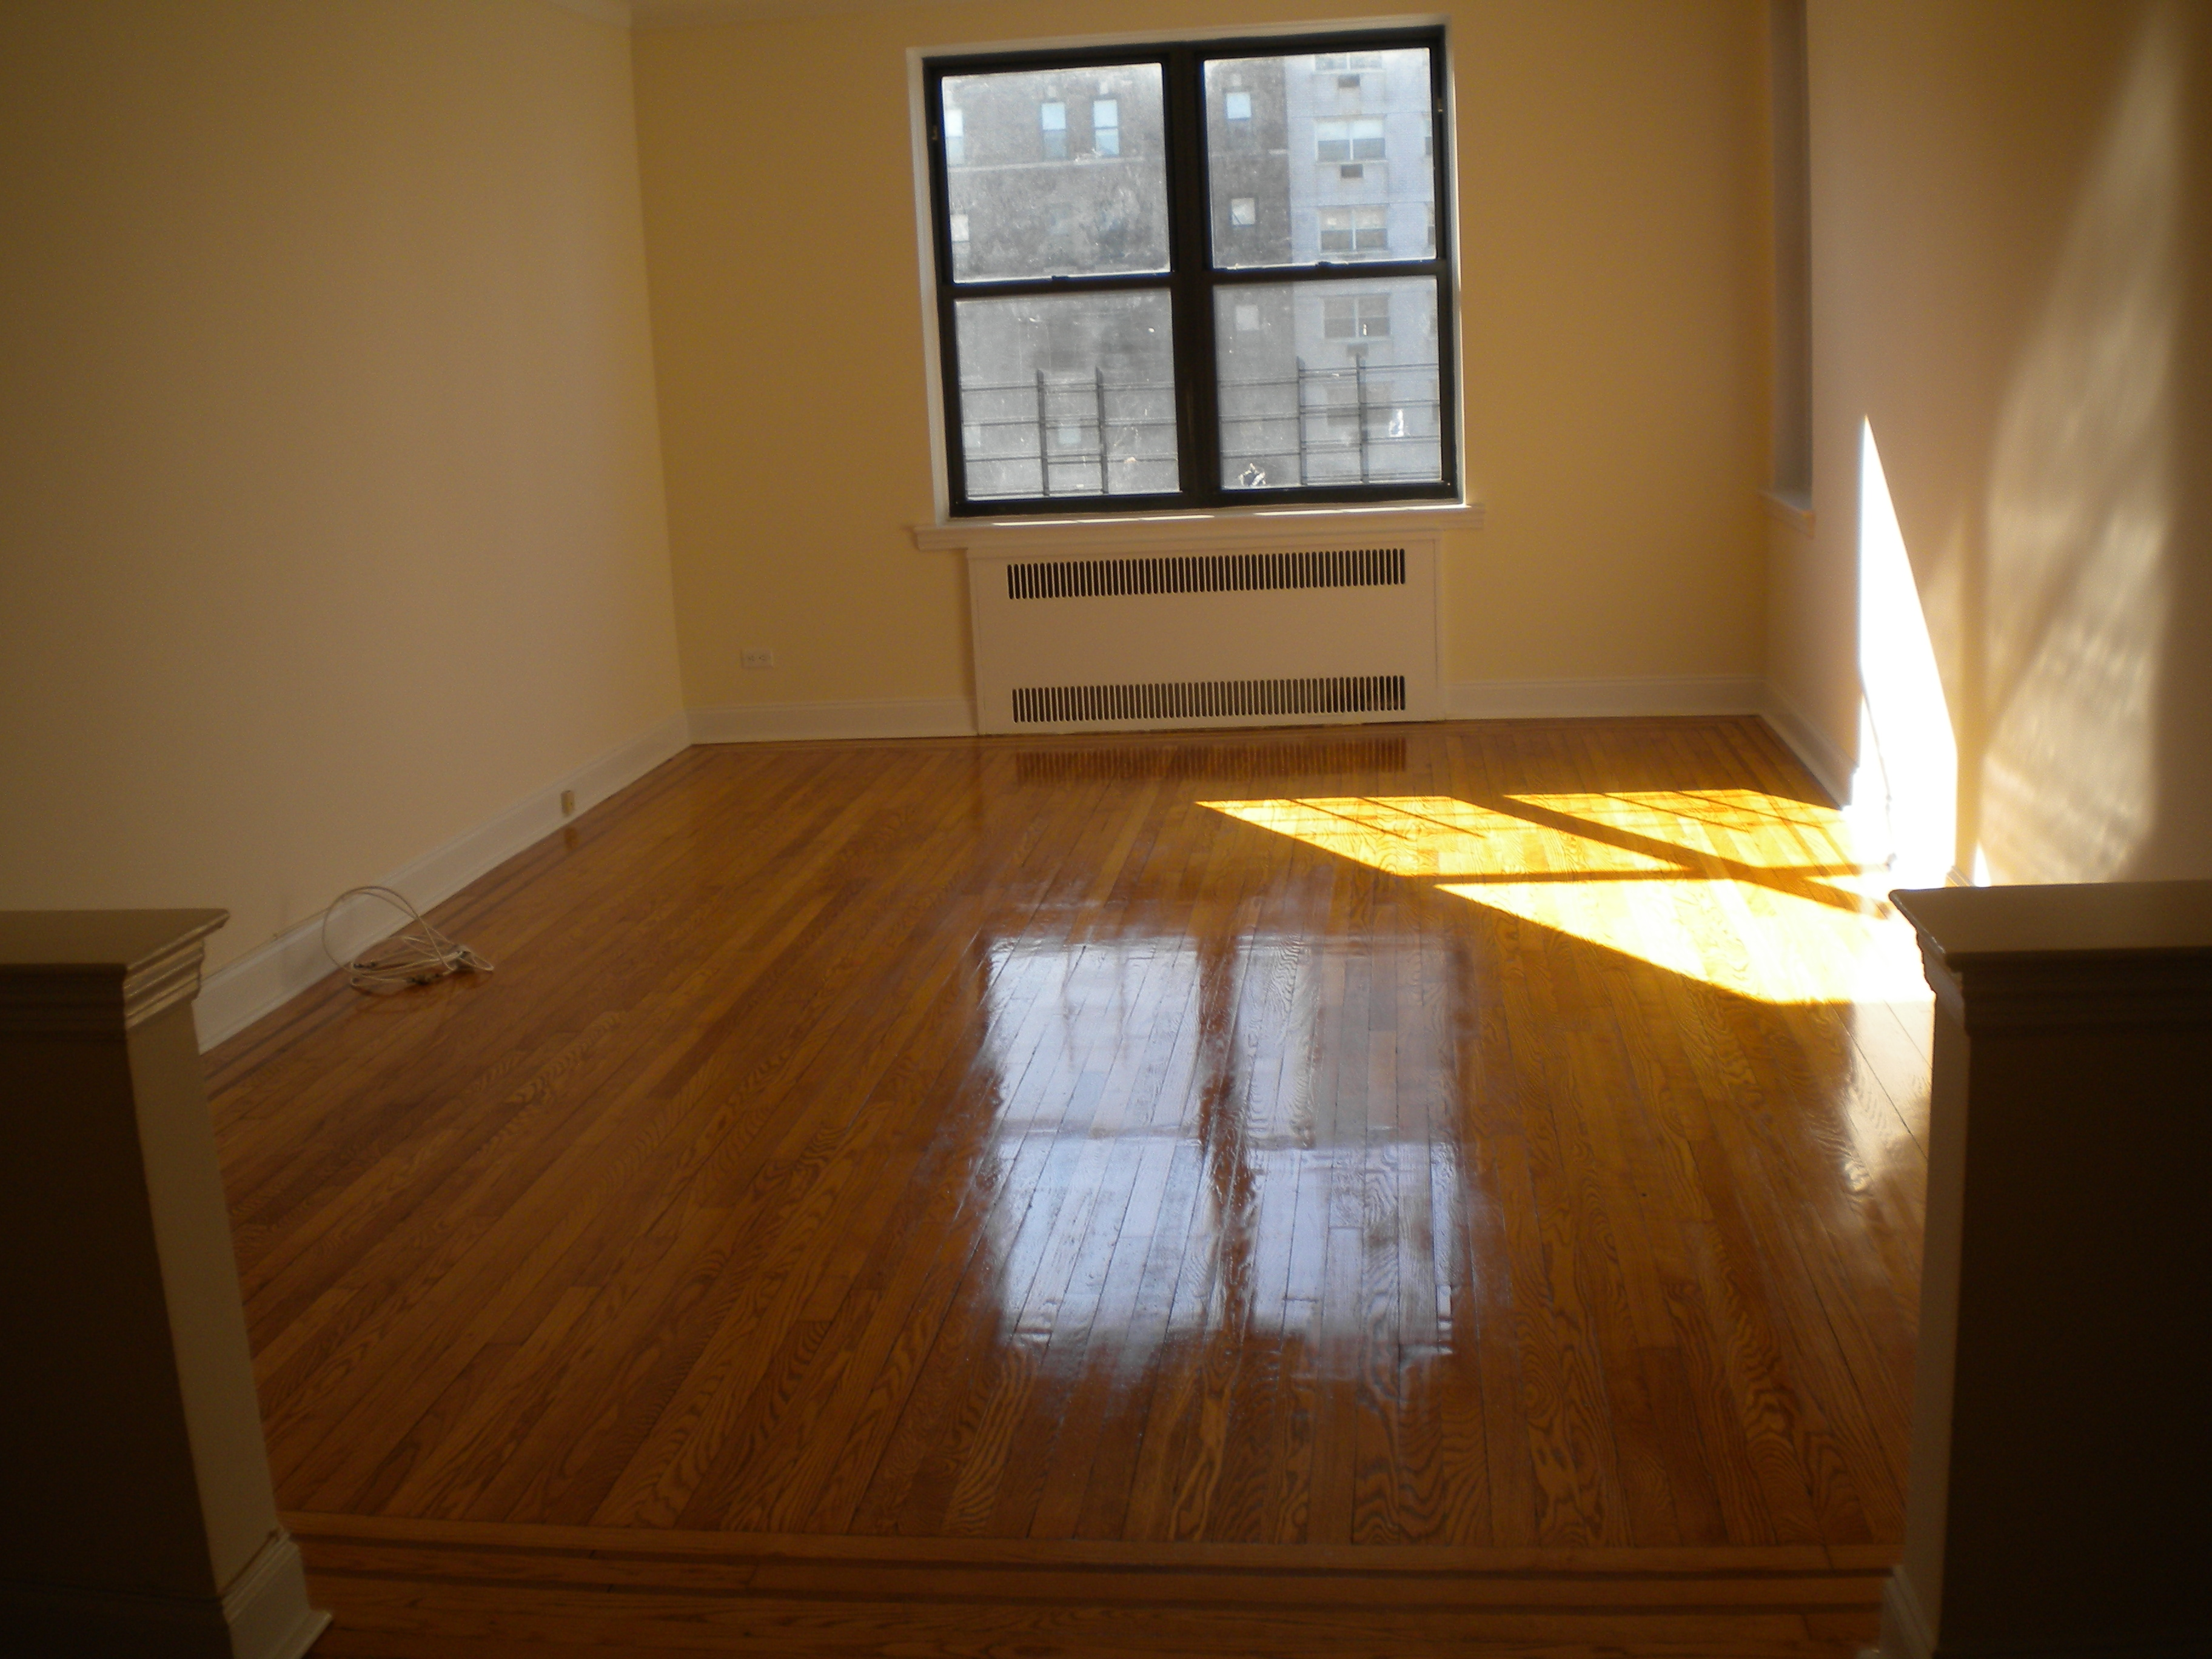 SUNNY!  Extra Large and spacious full 2 bedroom unit.  Apartment features:  Large eat-in-kitchen with all new appliances, large living room and spacious bedroom.   Beautiful hardwood floors, and great closet space. Pet friendly!  Move in condition.  Steps from 71st Continental E & F express trains, and R & M local.  Short walk to Austin St. shops, restaurants, movies, health club, and LIRR.   Contact Debbie to view at 631-691-9771.